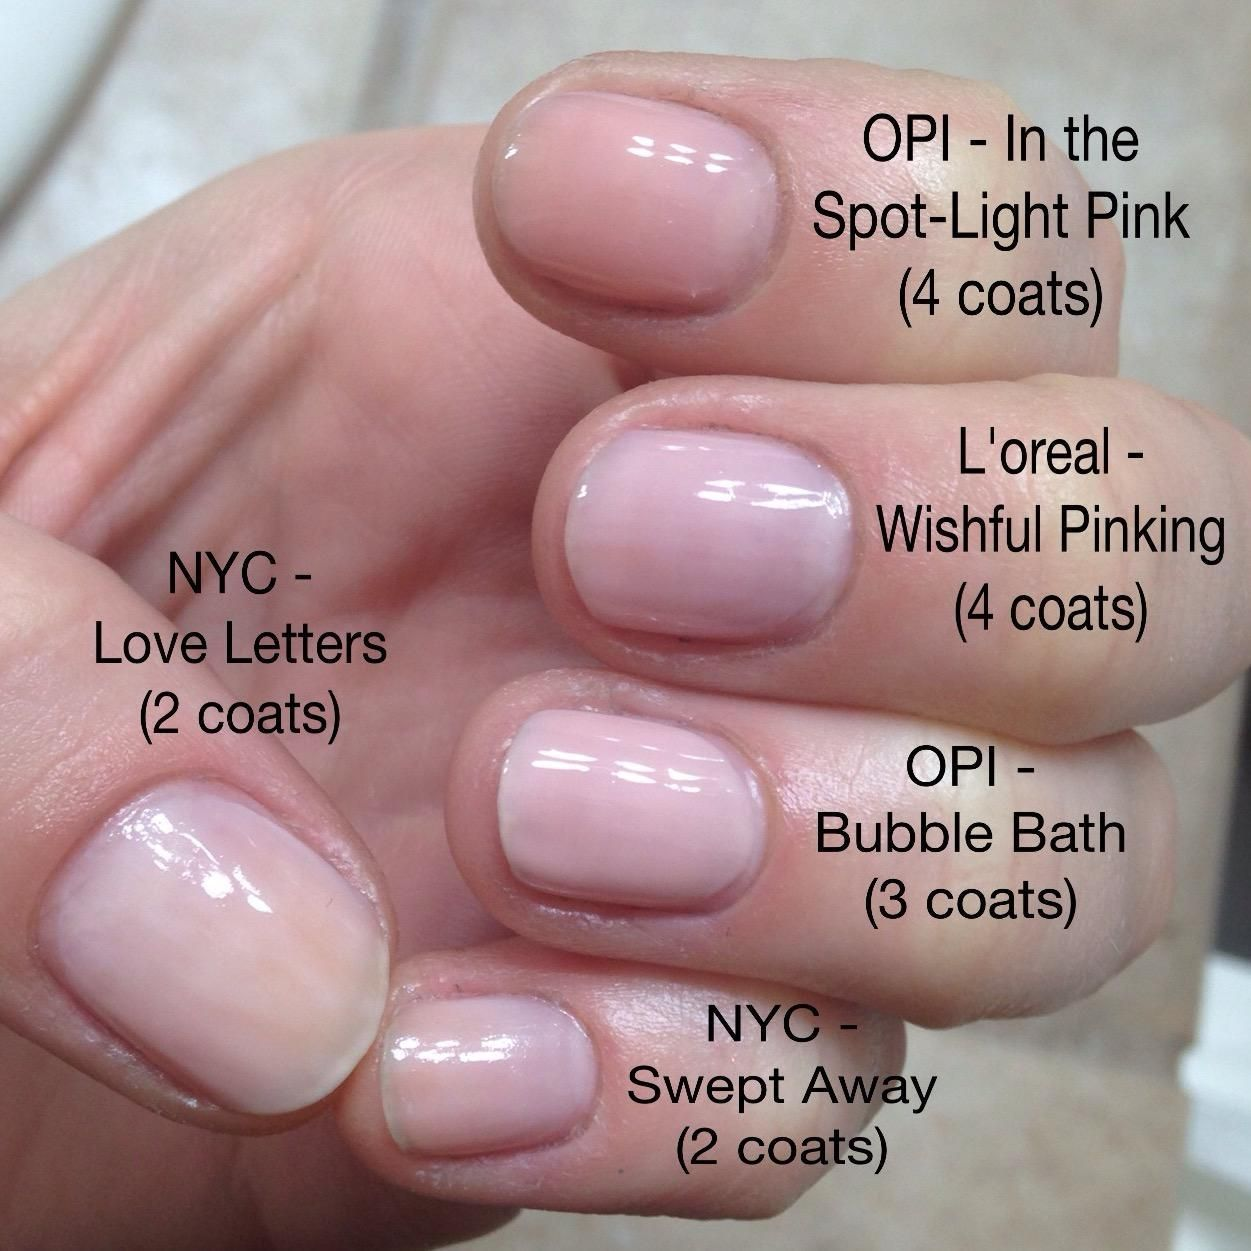 OPI's Passion from OPI's Soft Shades Collection. This ... |Sheer Pink Nail Polish Opi